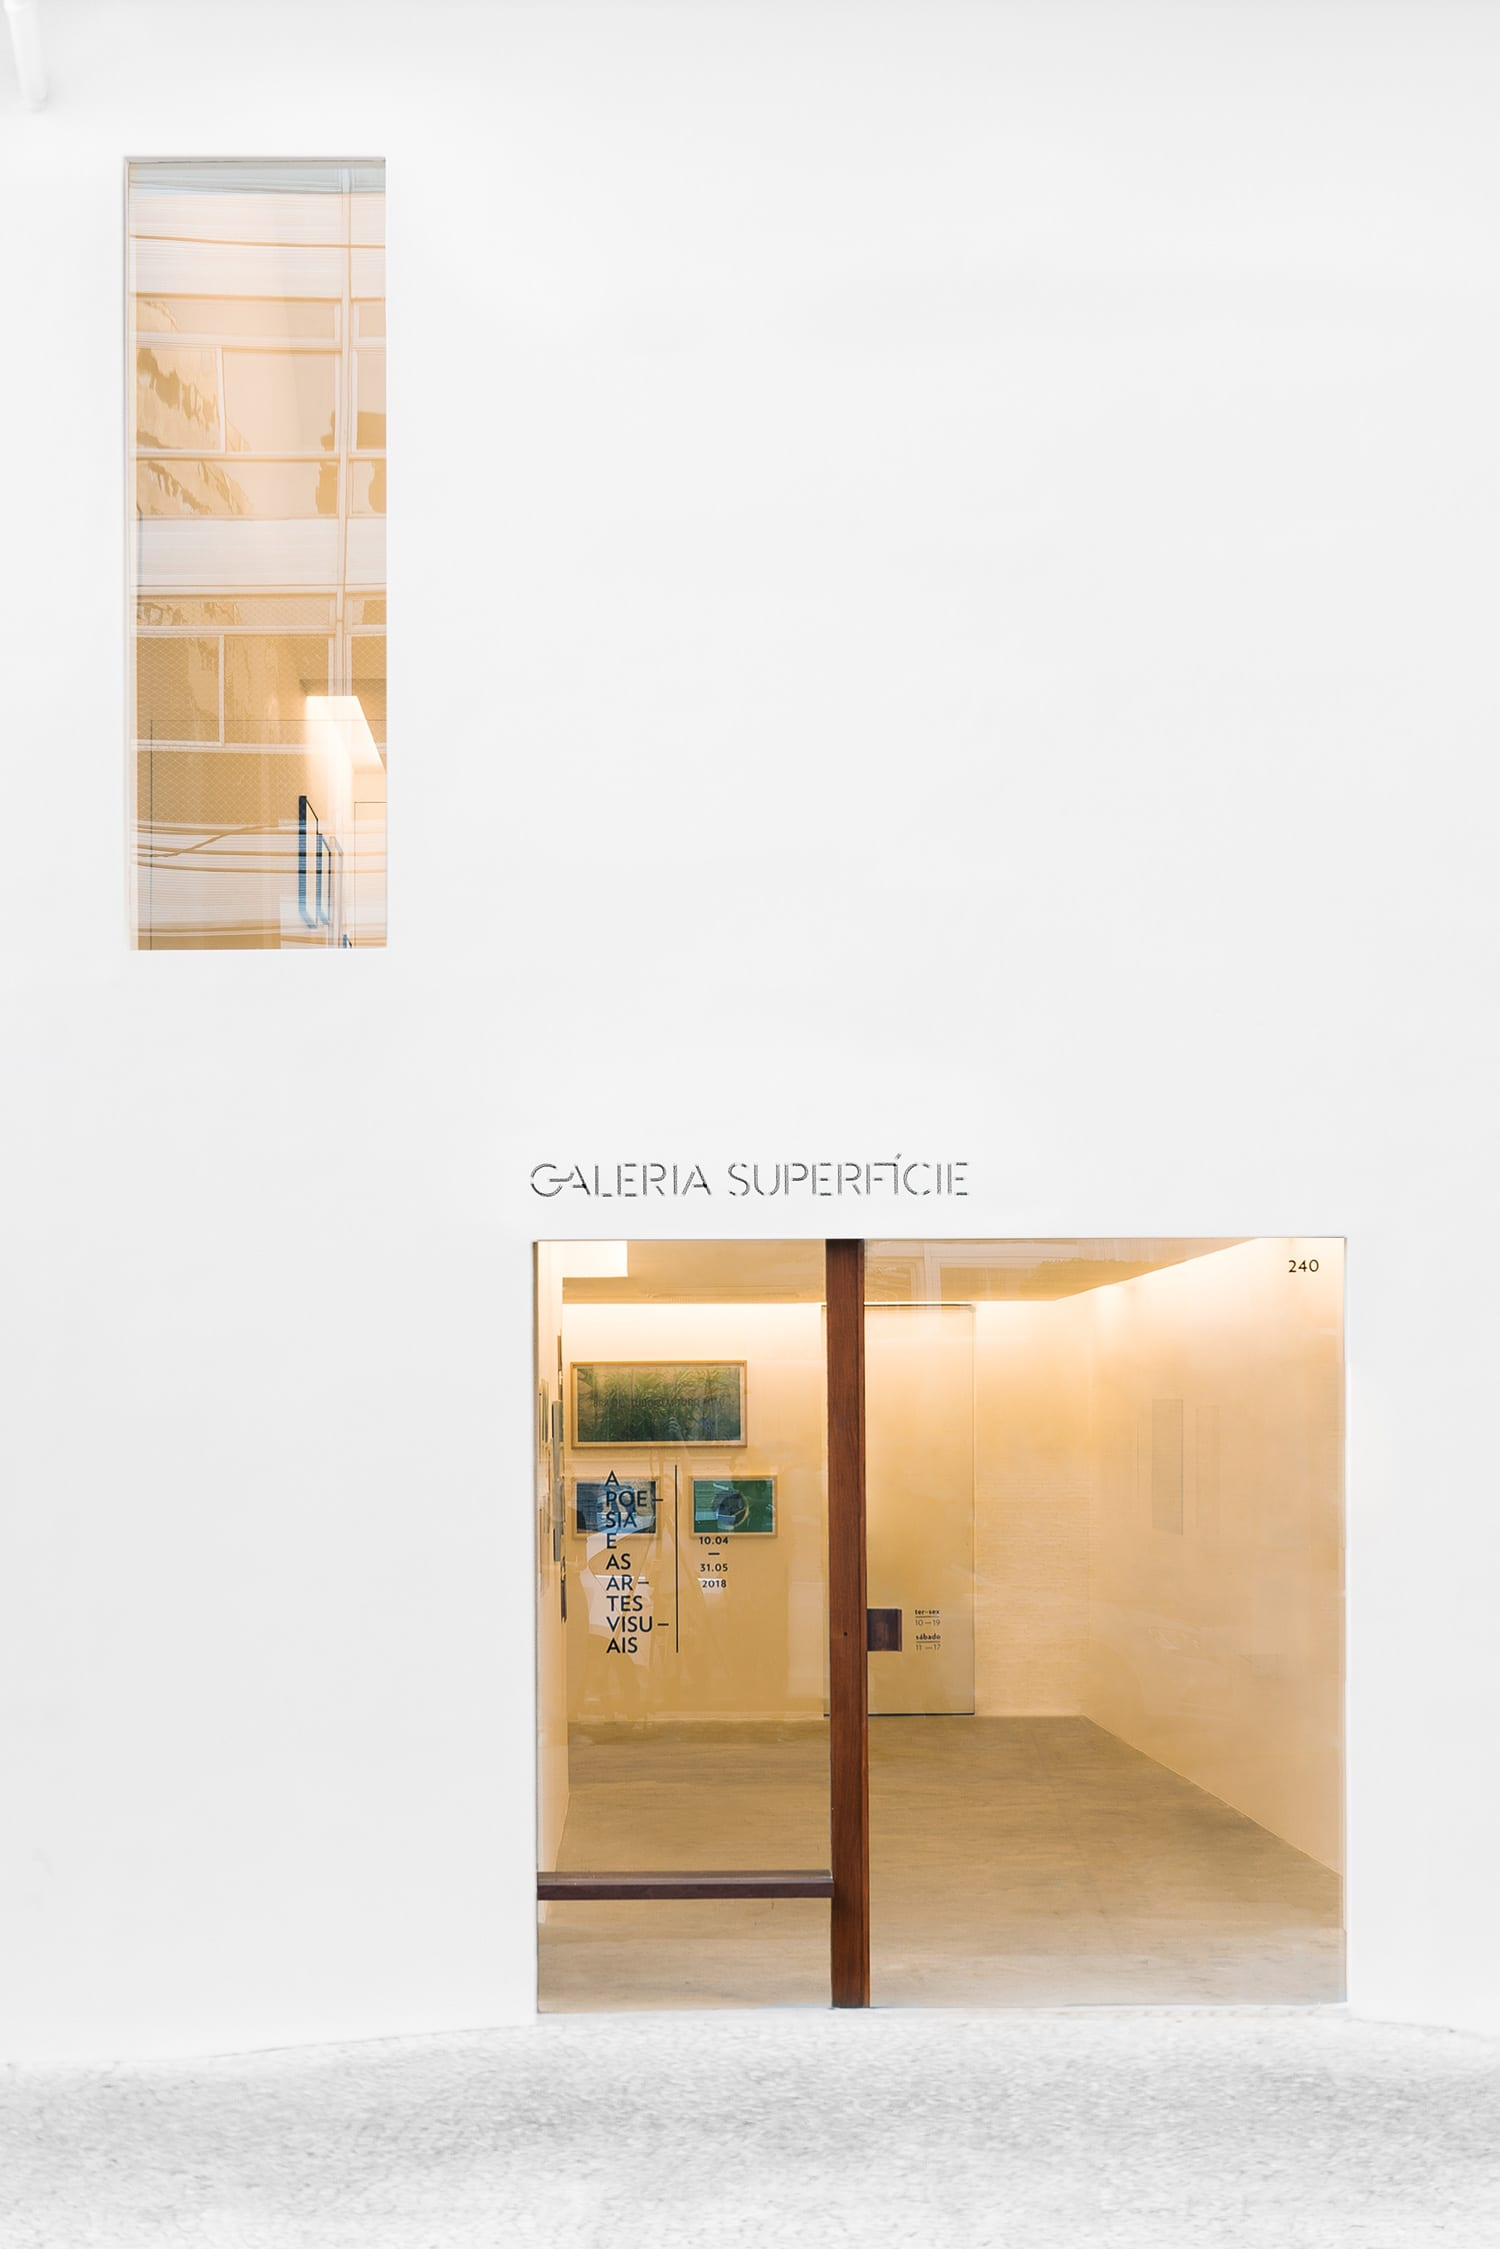 Superficie Gallery by Mnma Studio | Yellowtrace